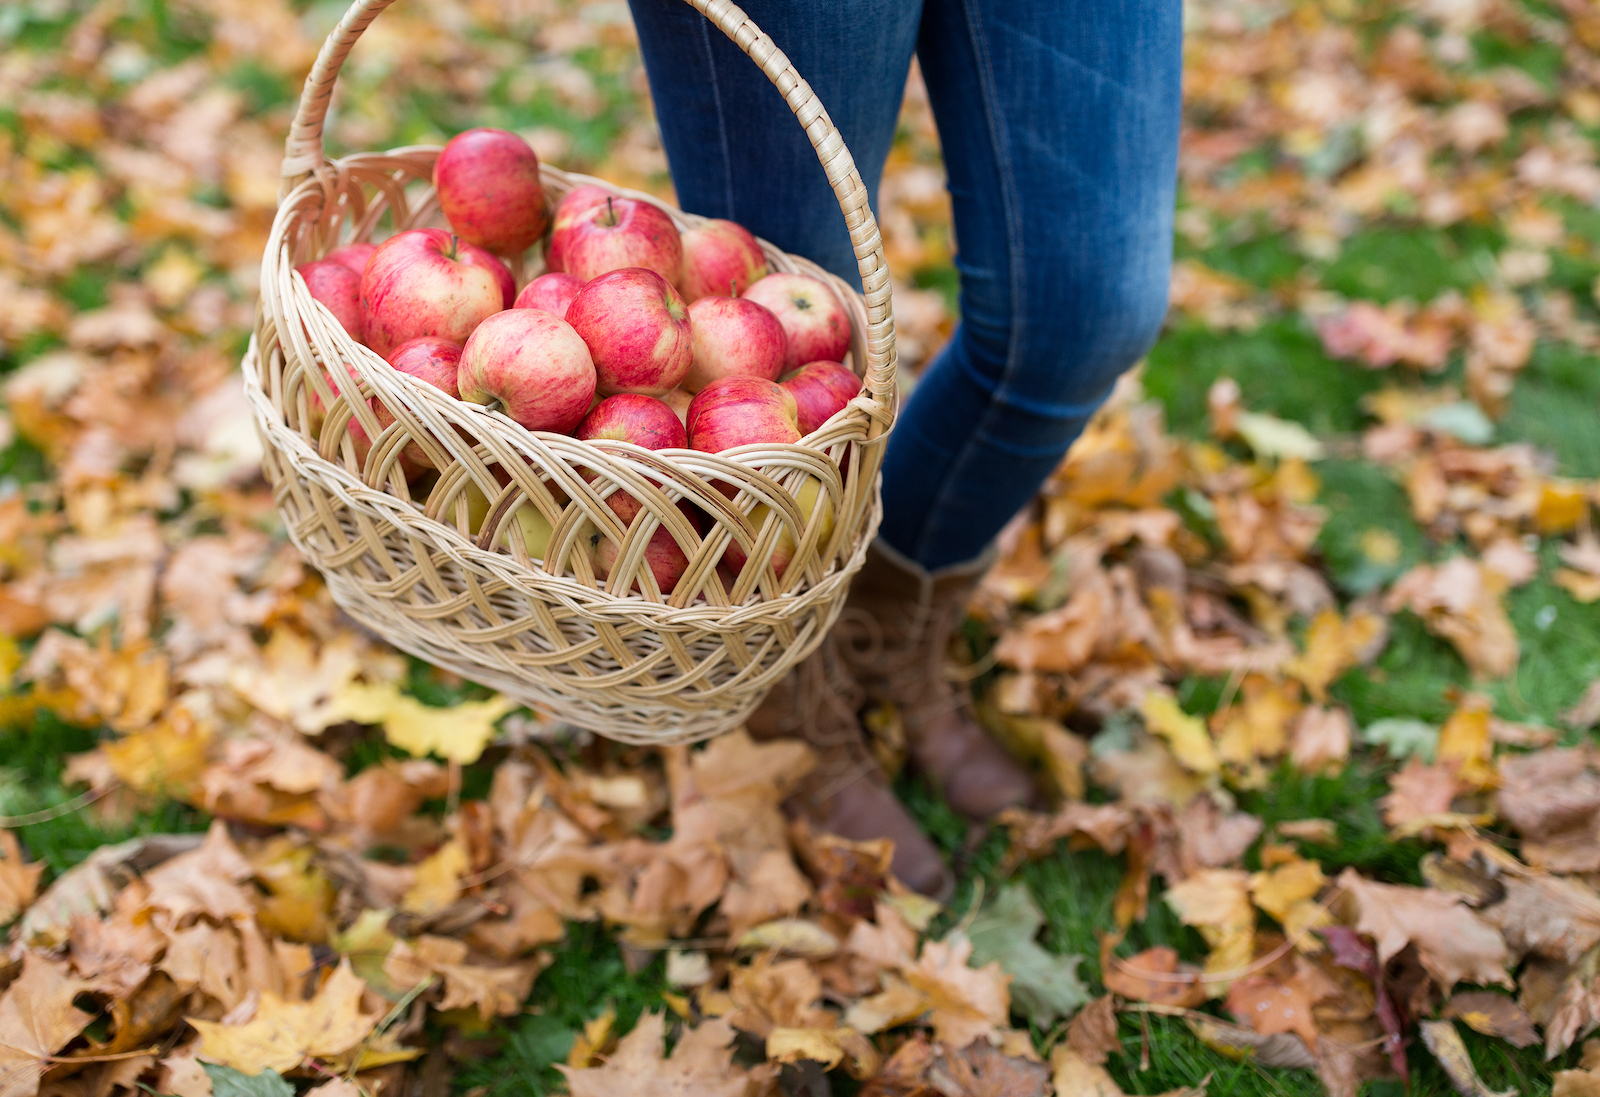 Apple orchard - apple picking farms